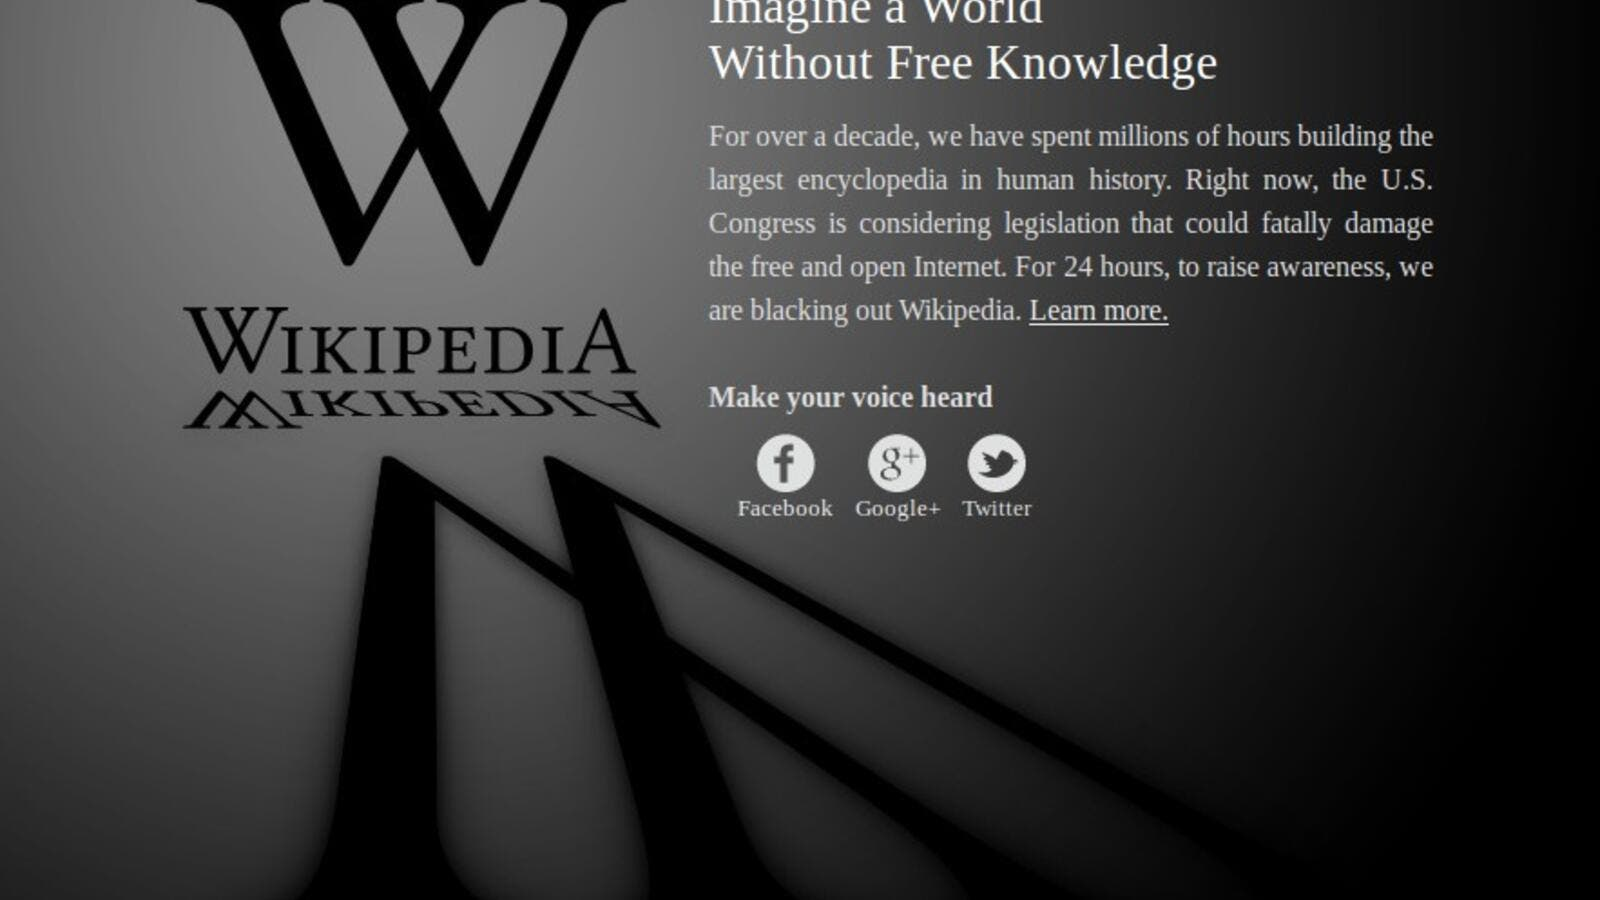 Wikipedia page during Blackout.